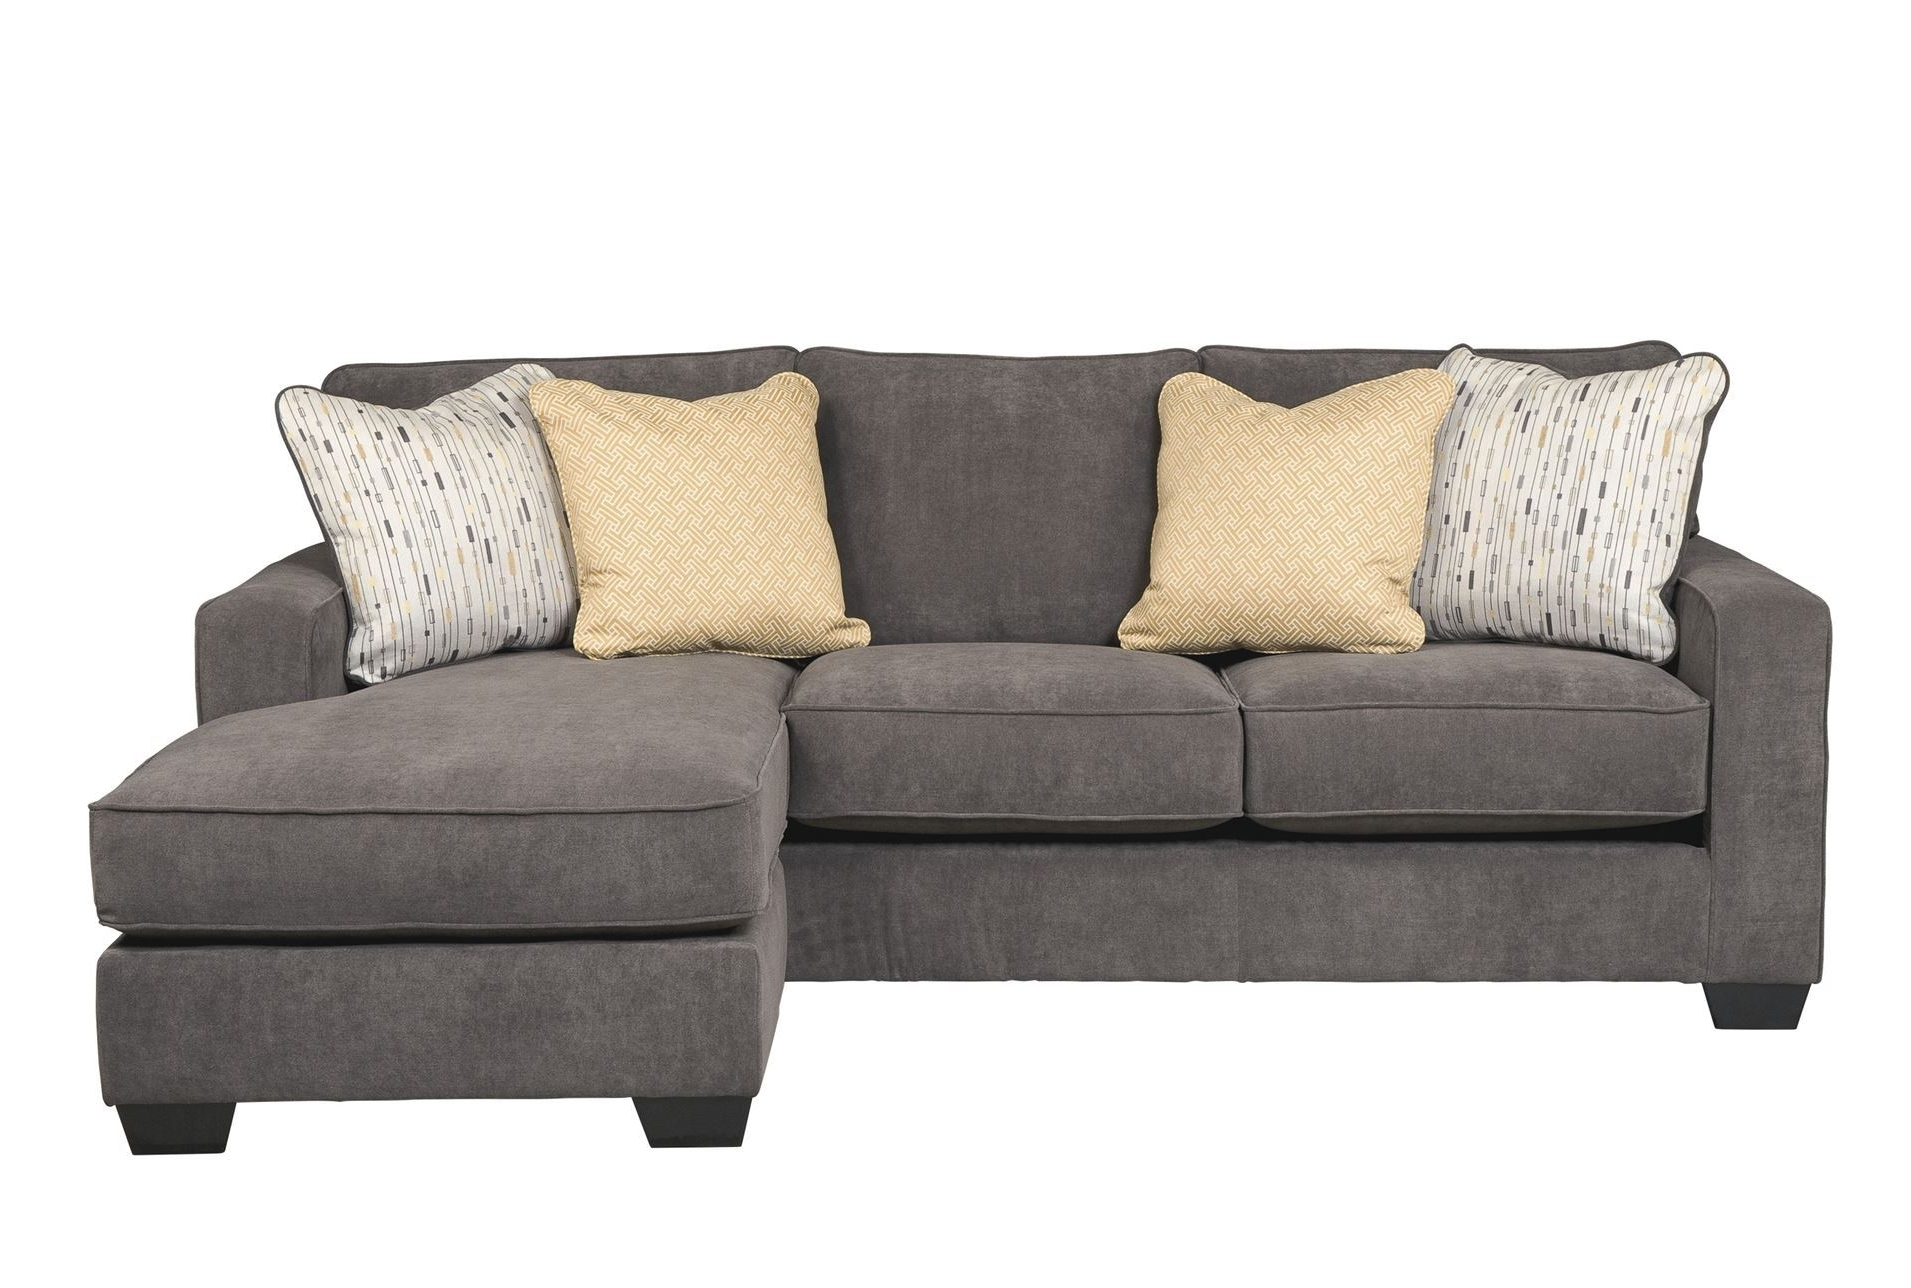 Sofa With Chaise Helpformycredit Regarding Chaise Sofa Covers (#10 of 12)